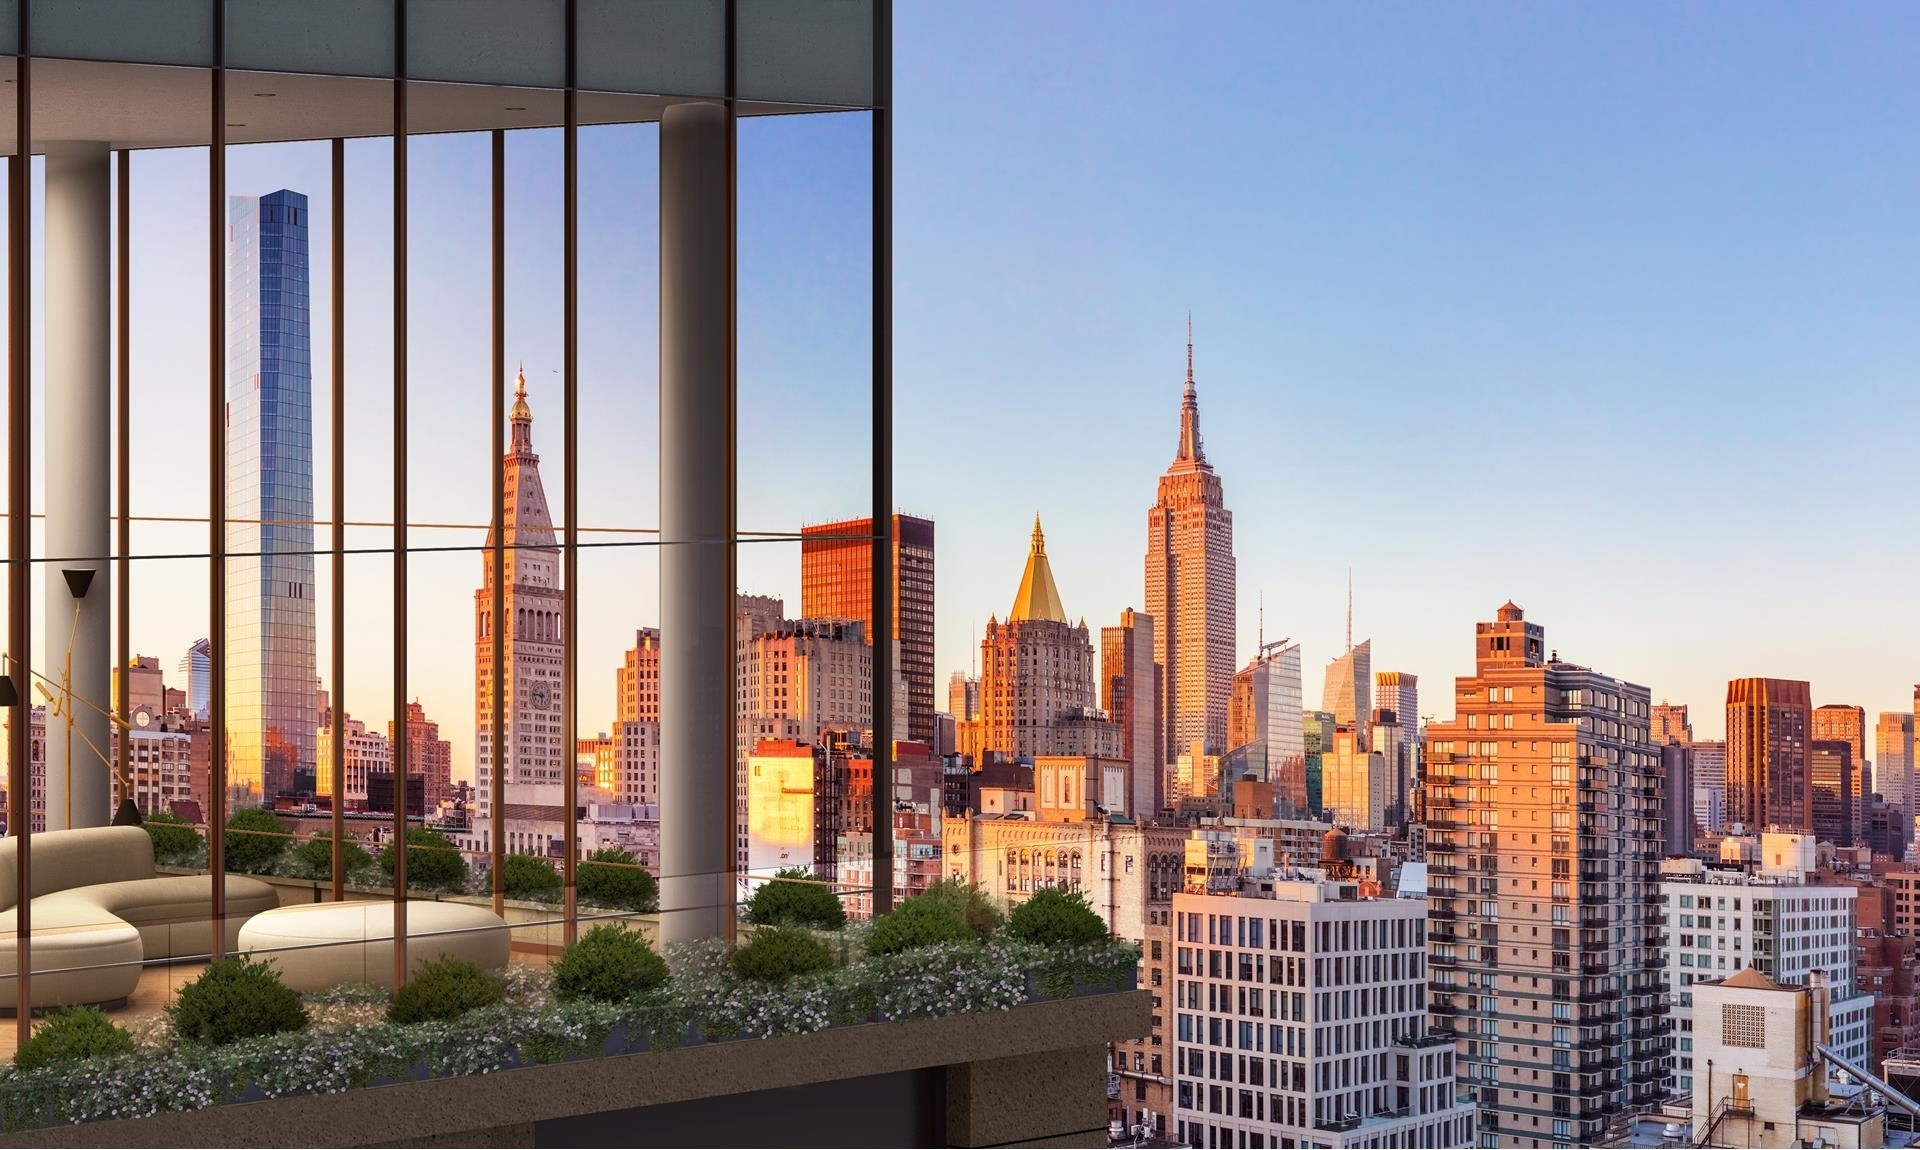 Condominium for Sale at Gramercy Square, 215 East 19th St, 15B Gramercy Park, New York, NY 10003